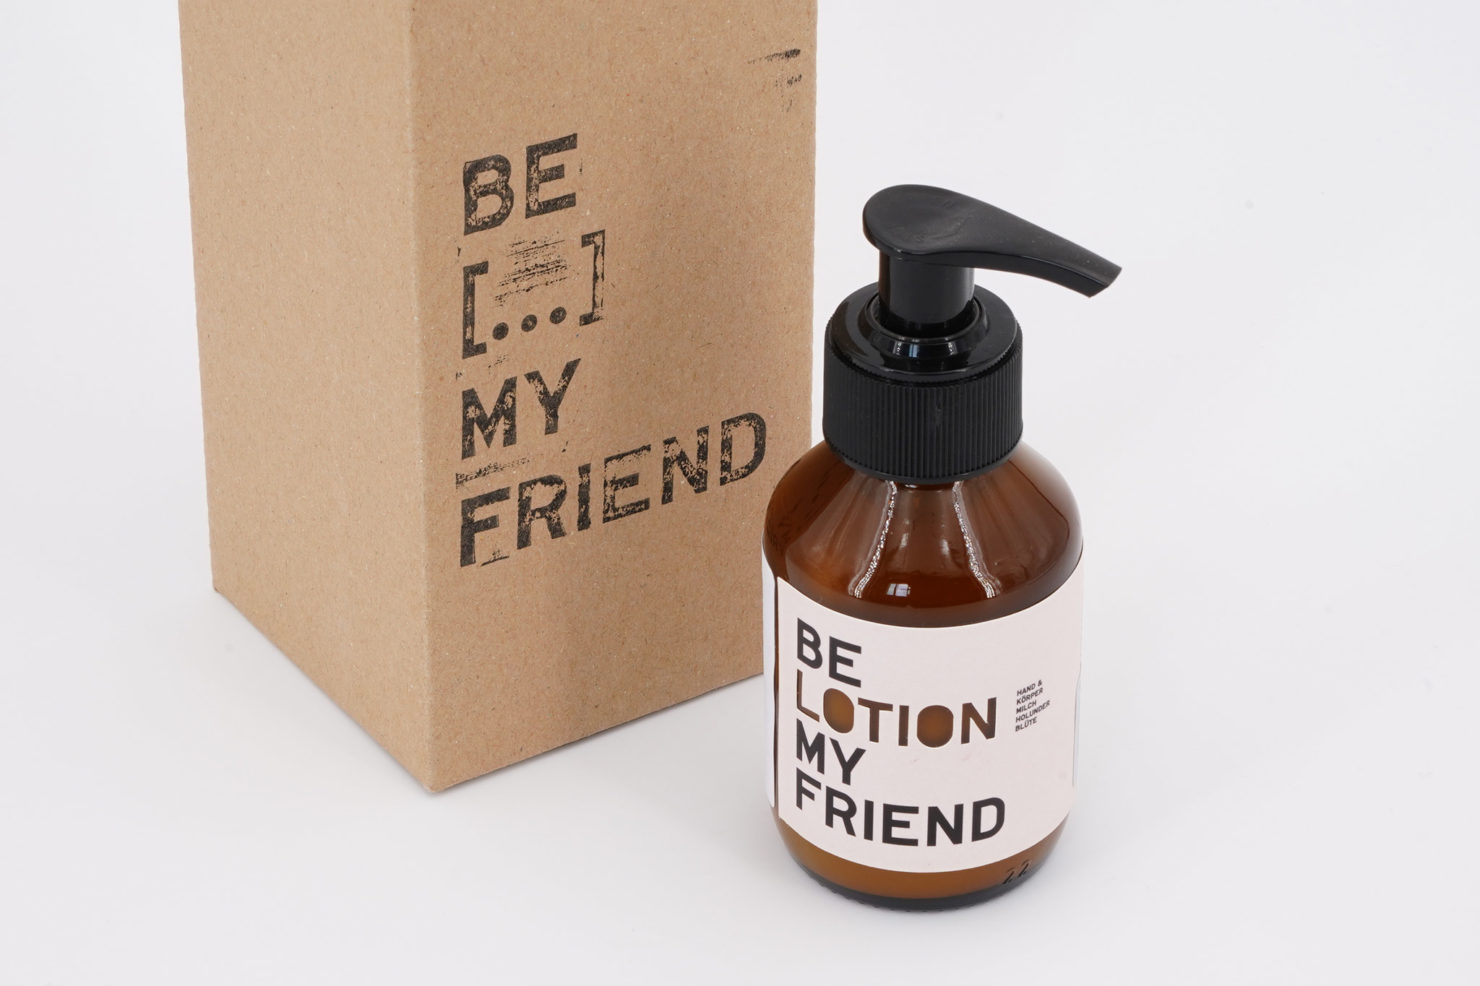 BE LOTION MY FRIEND 100ML BE MY FRIEND